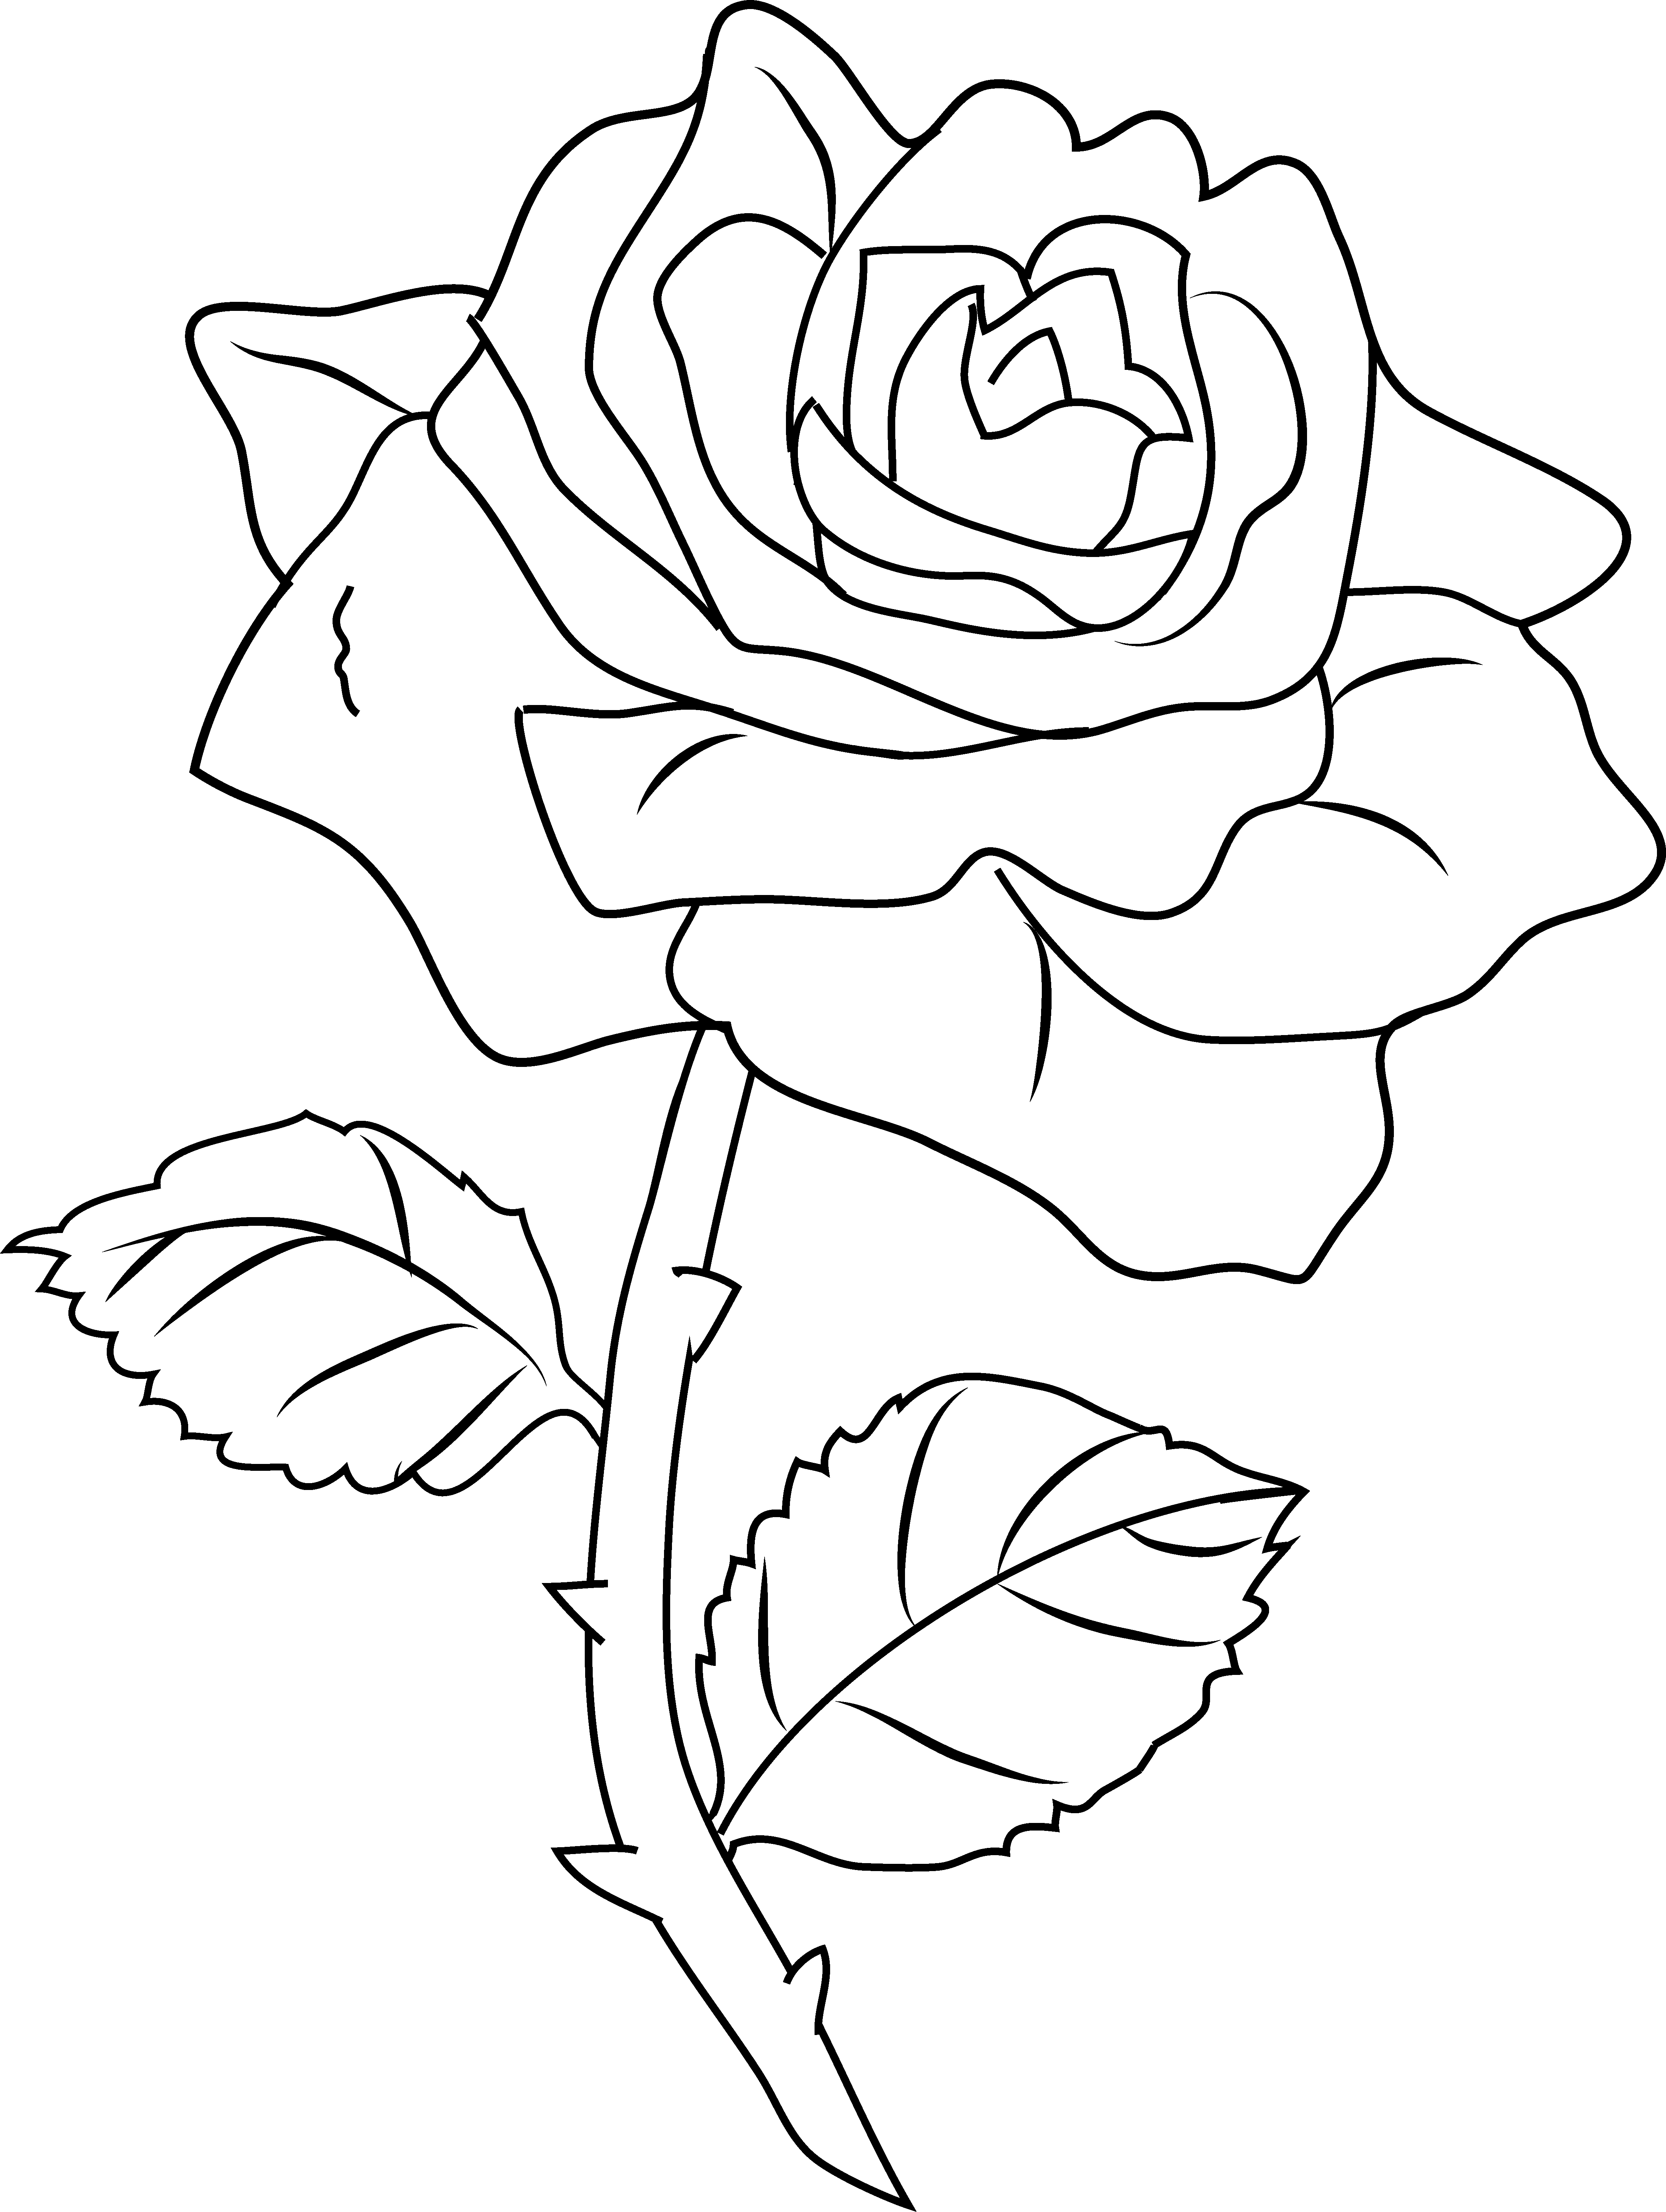 Black Rose coloring #4, Download drawings